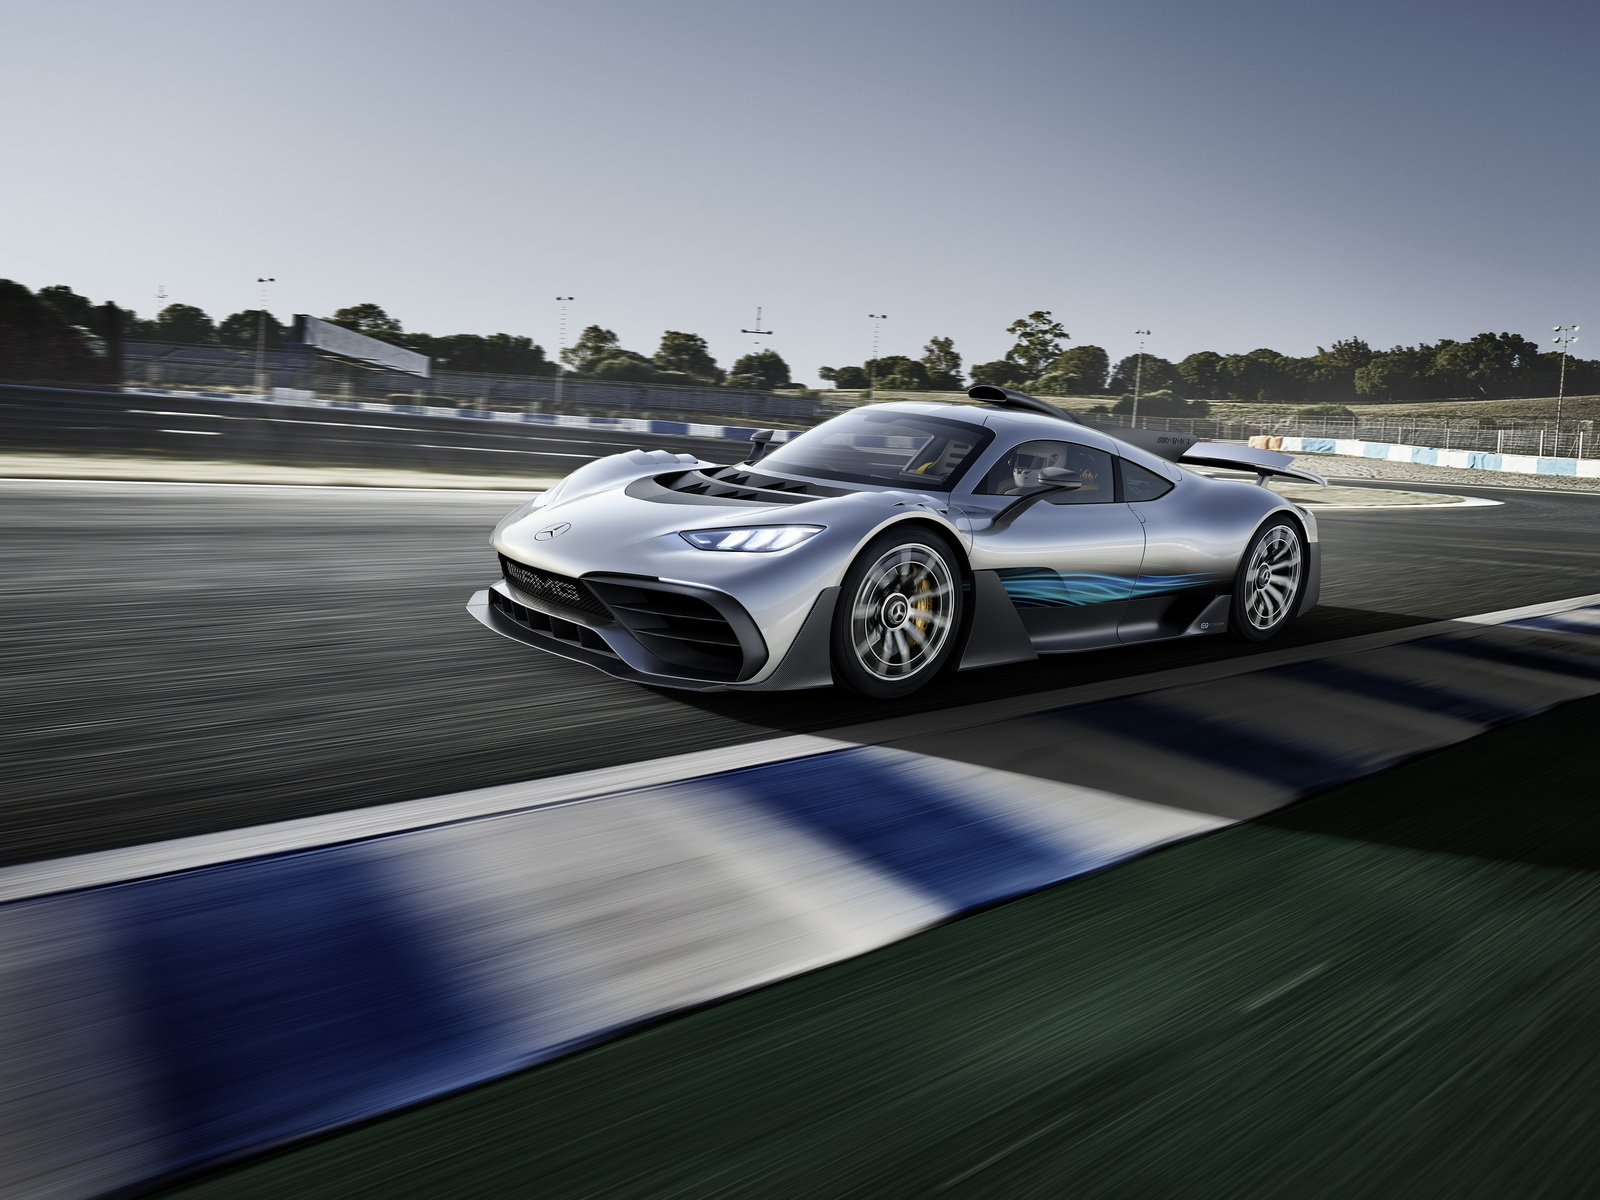 mercedes-amg-project-one-3.jpg